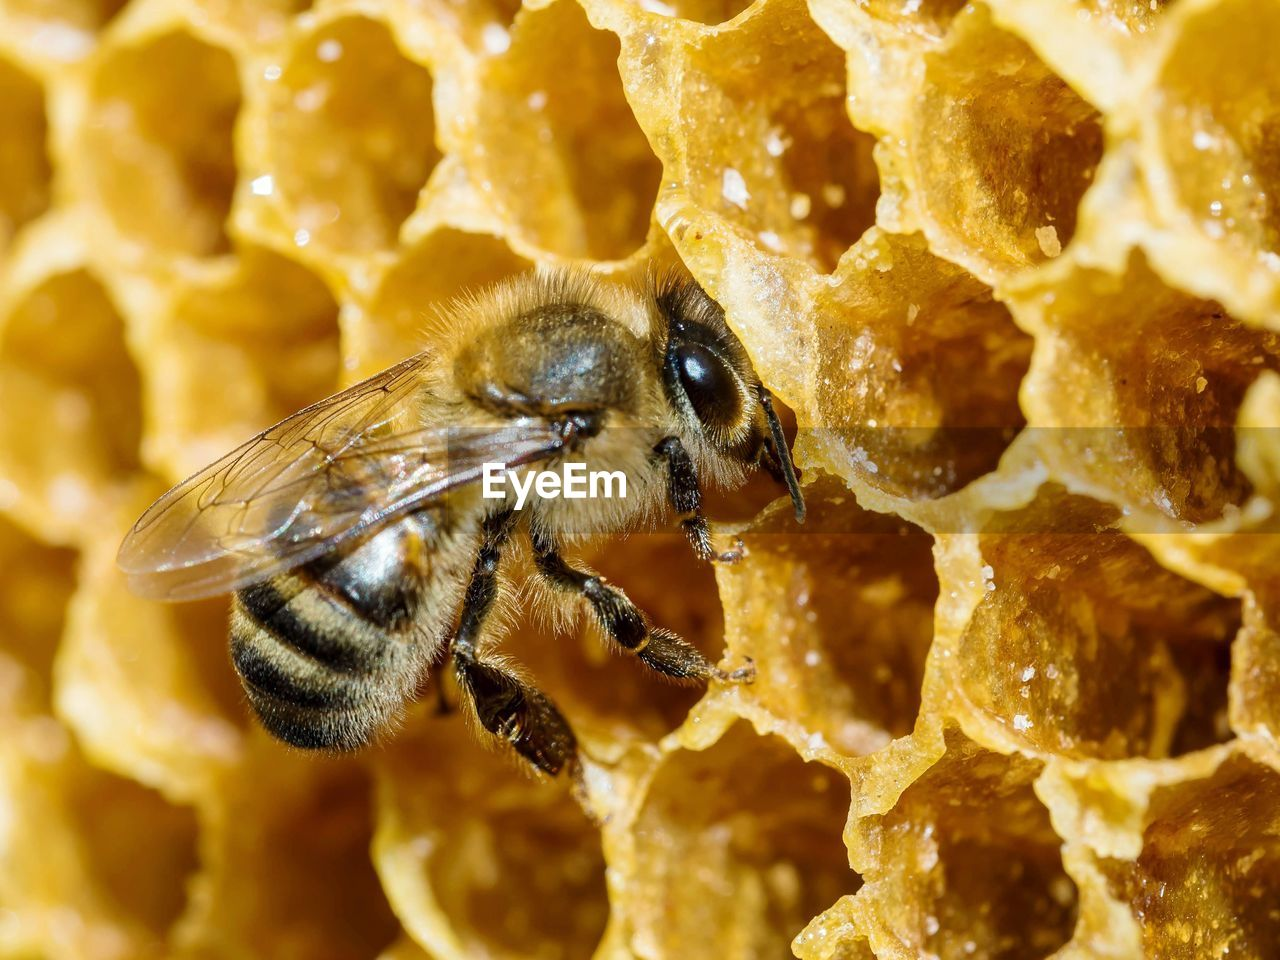 animal themes, animal, insect, animal wildlife, animals in the wild, invertebrate, one animal, bee, close-up, no people, beauty in nature, honey bee, nature, yellow, honeycomb, day, focus on foreground, zoology, apiculture, outdoors, flower head, pollination